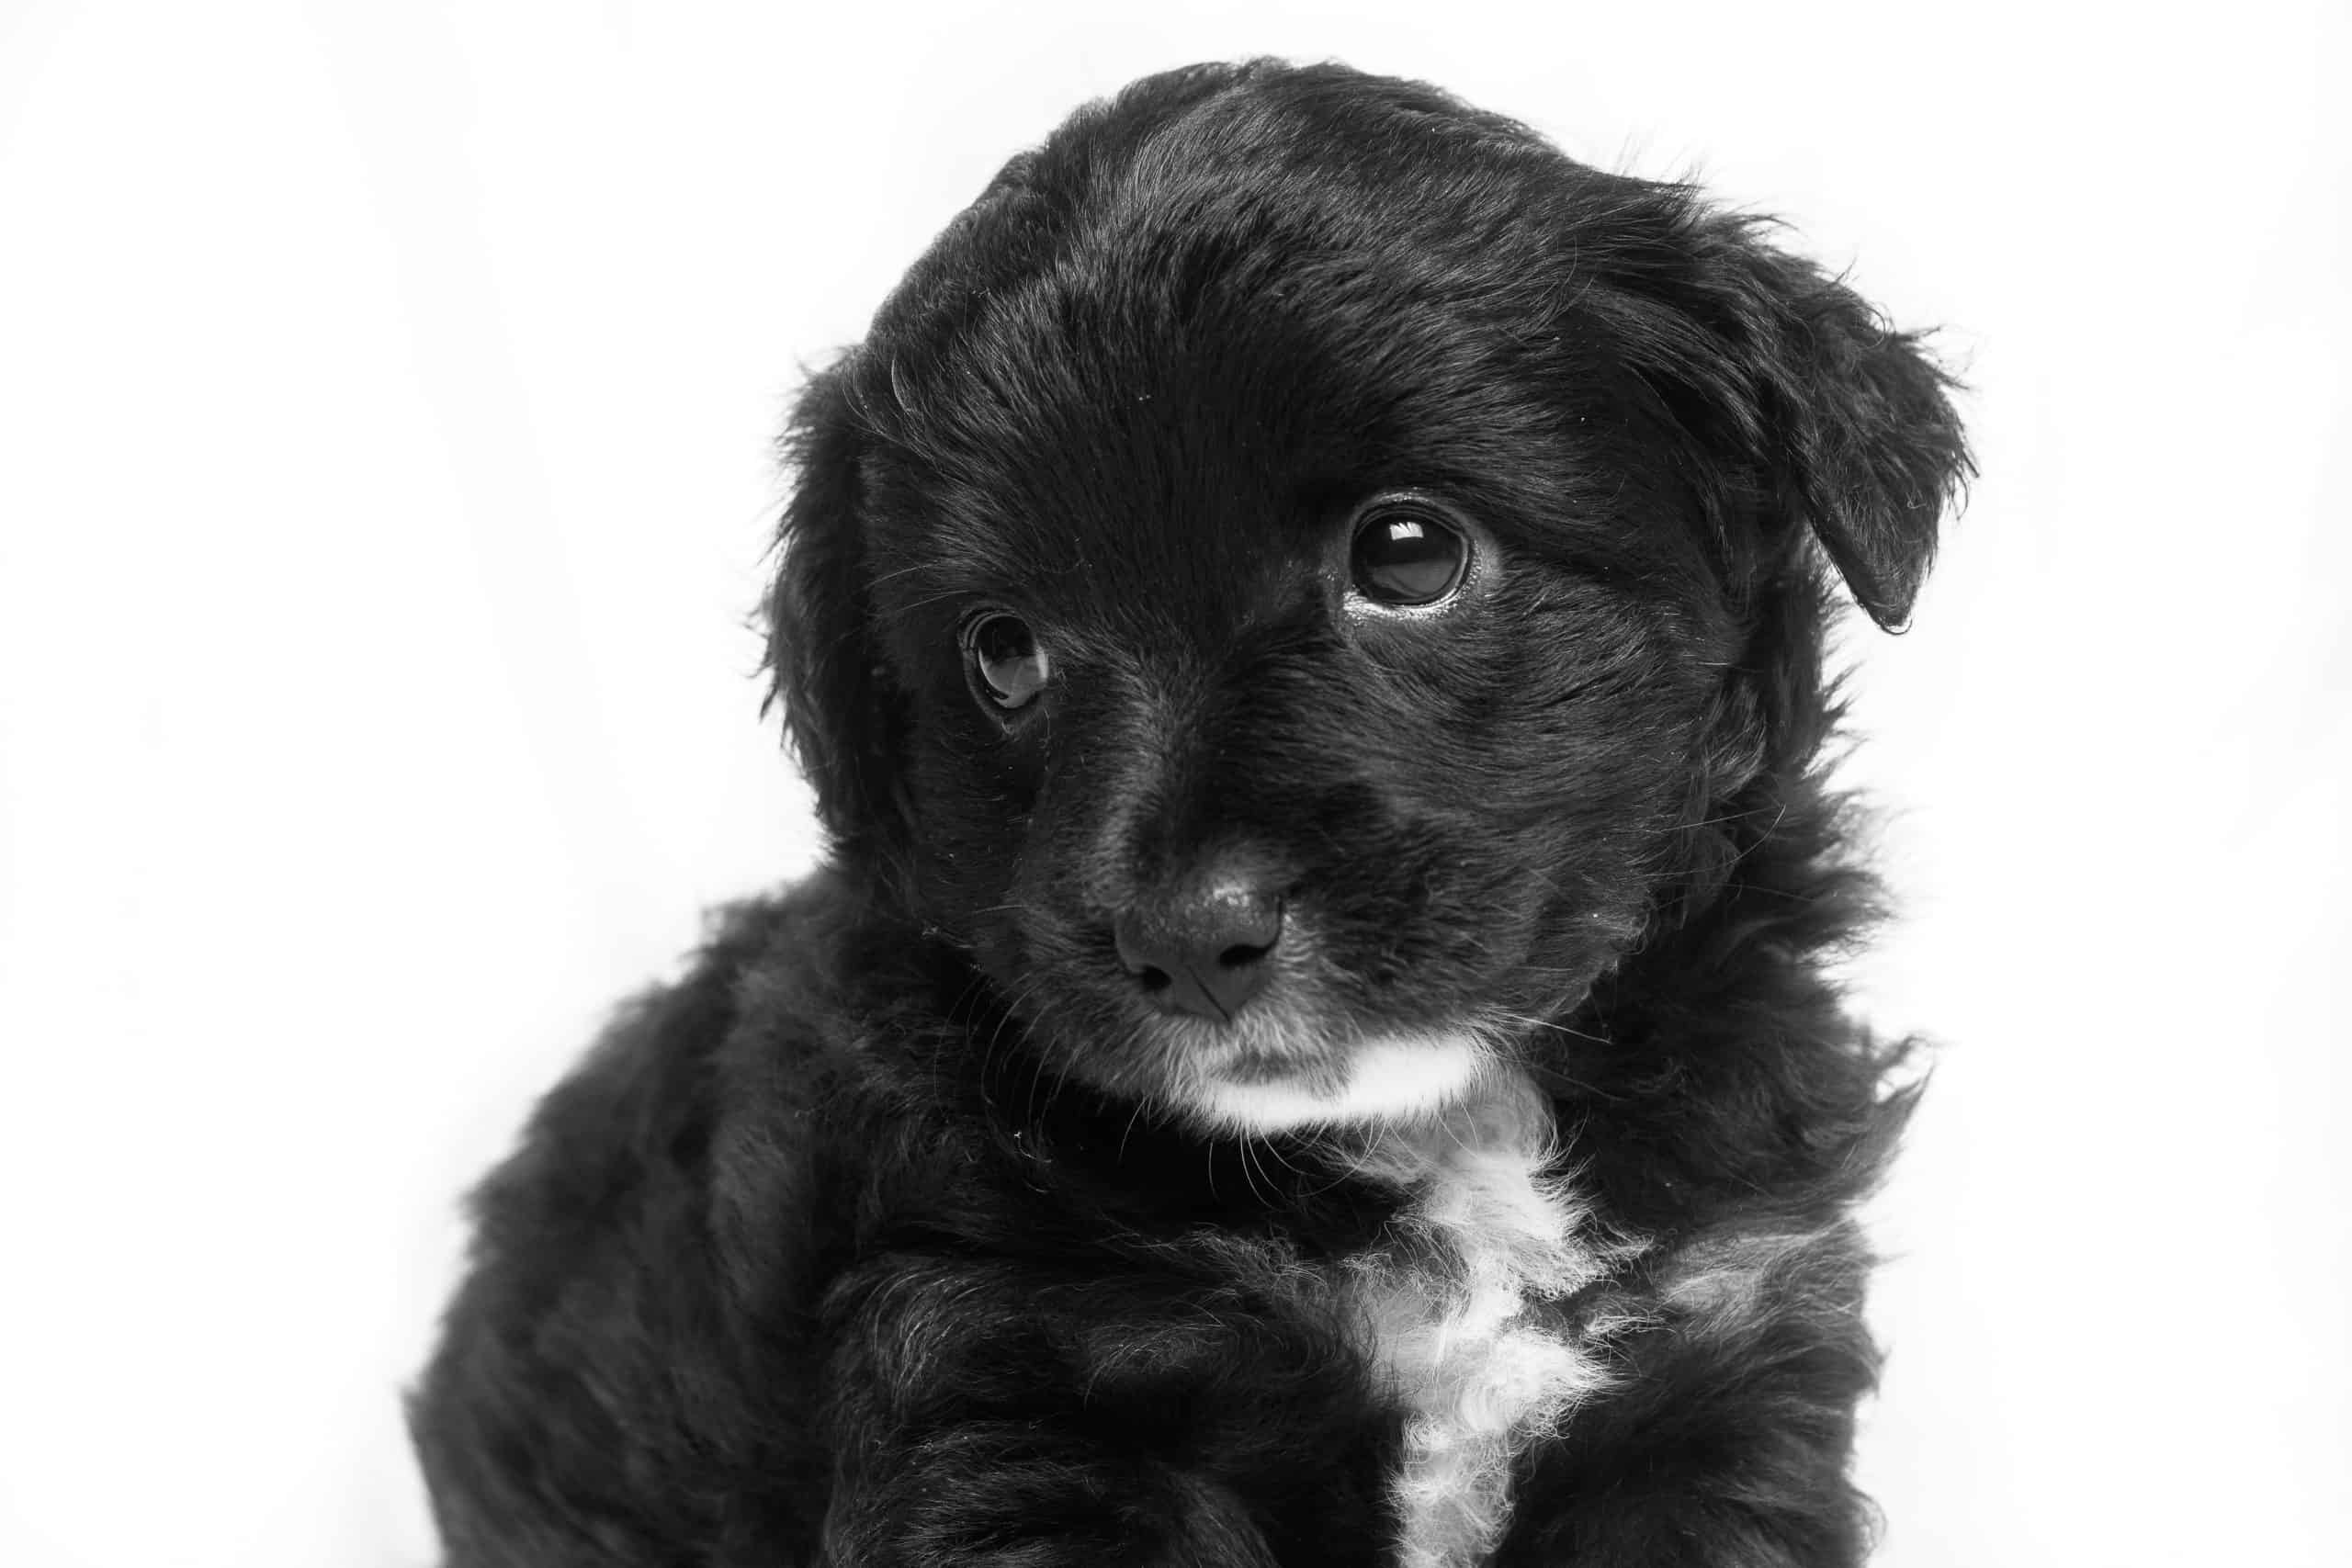 What You Need To Know Before Buying An Australian Shepherd Puppy